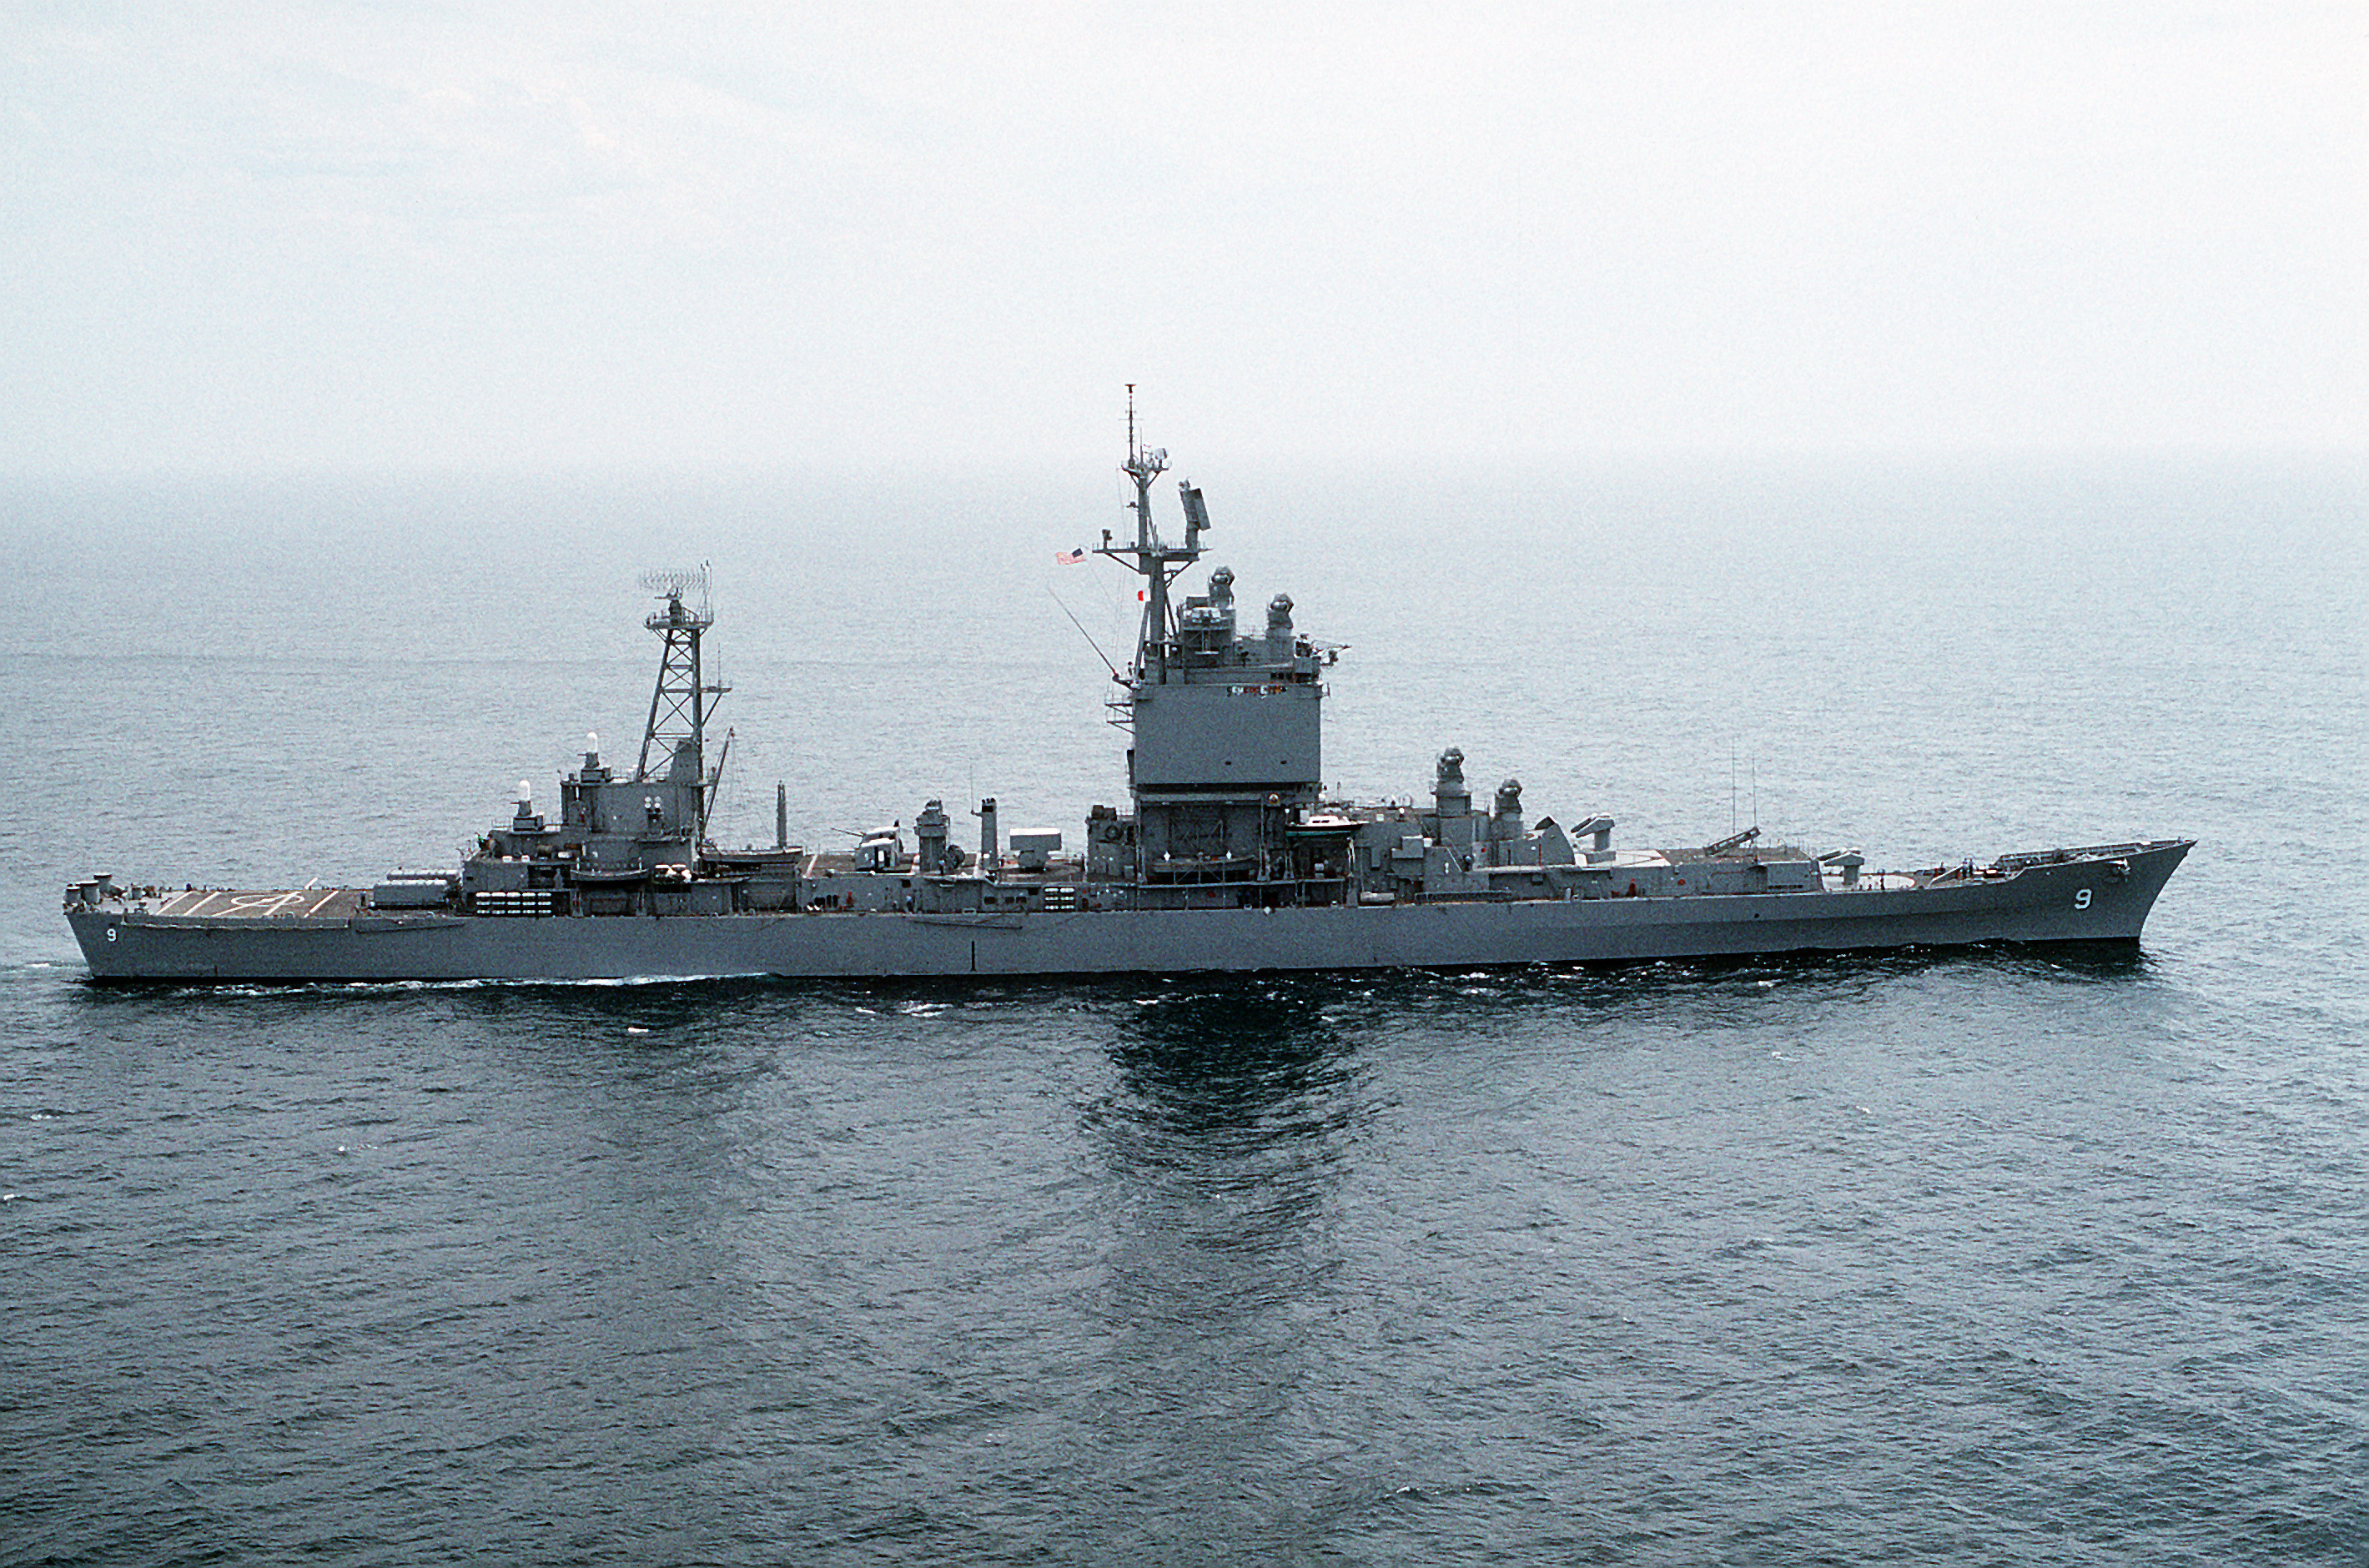 Uss long beach cgn 9 wikiwand aiddatafo Images